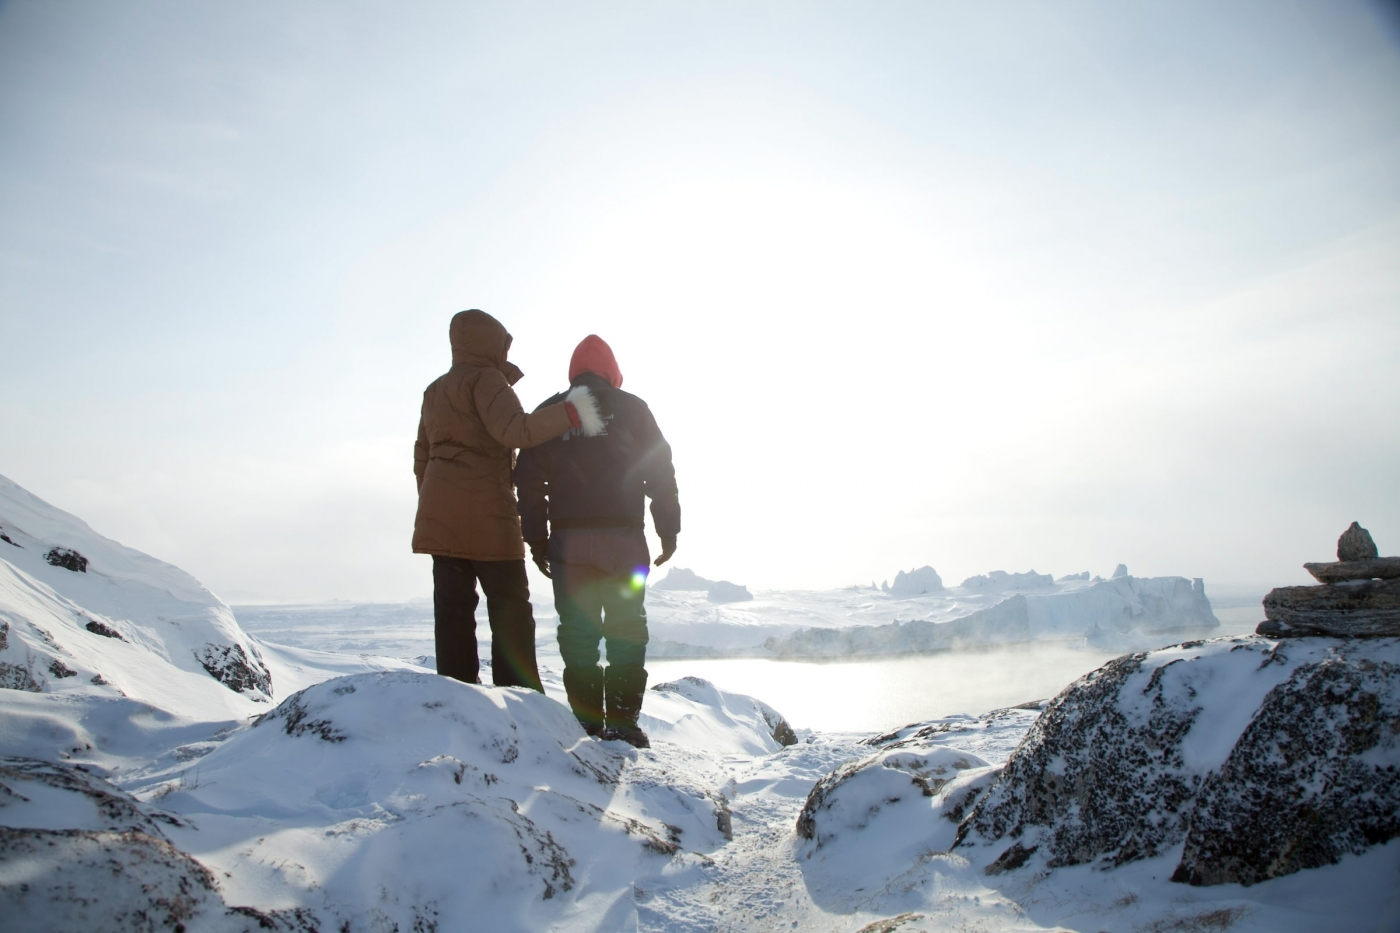 A couple of travelers overlooking an iceberg on a crisp winter's day near Ilulissat Ice Fjord in Greenland. Photo by David Trood - Visit Greenland